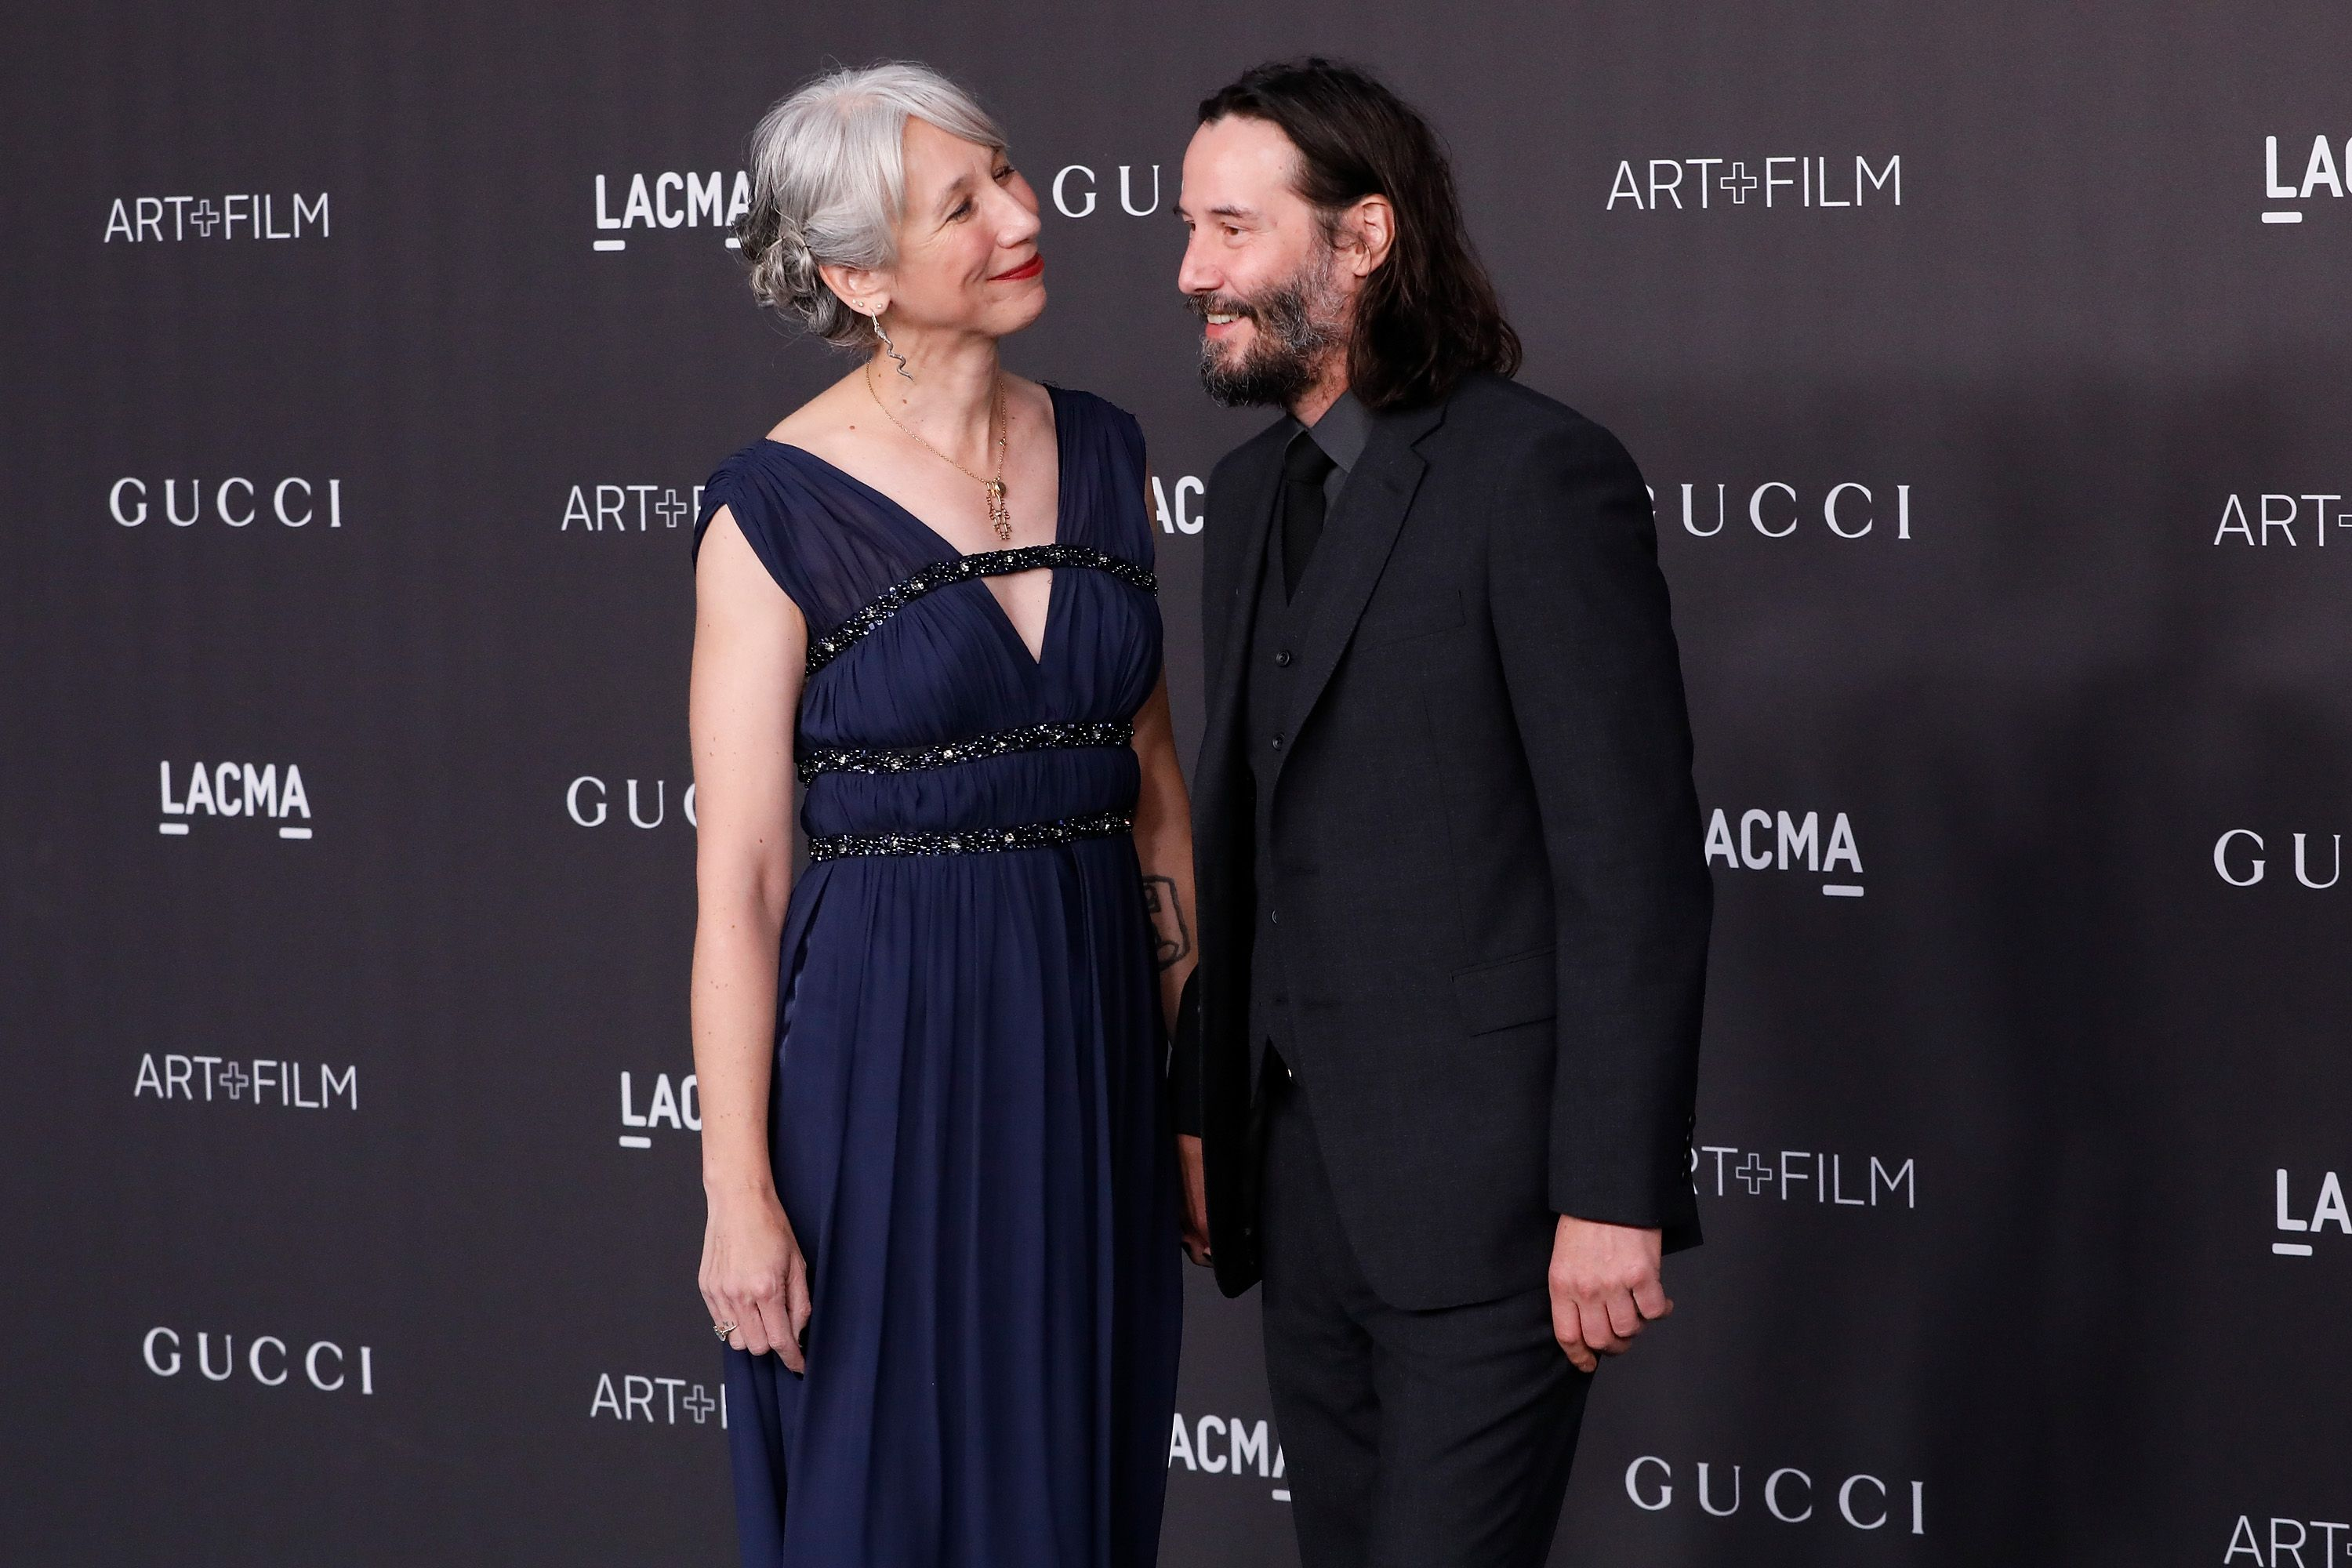 keanu reeves and alexandra grant at an event